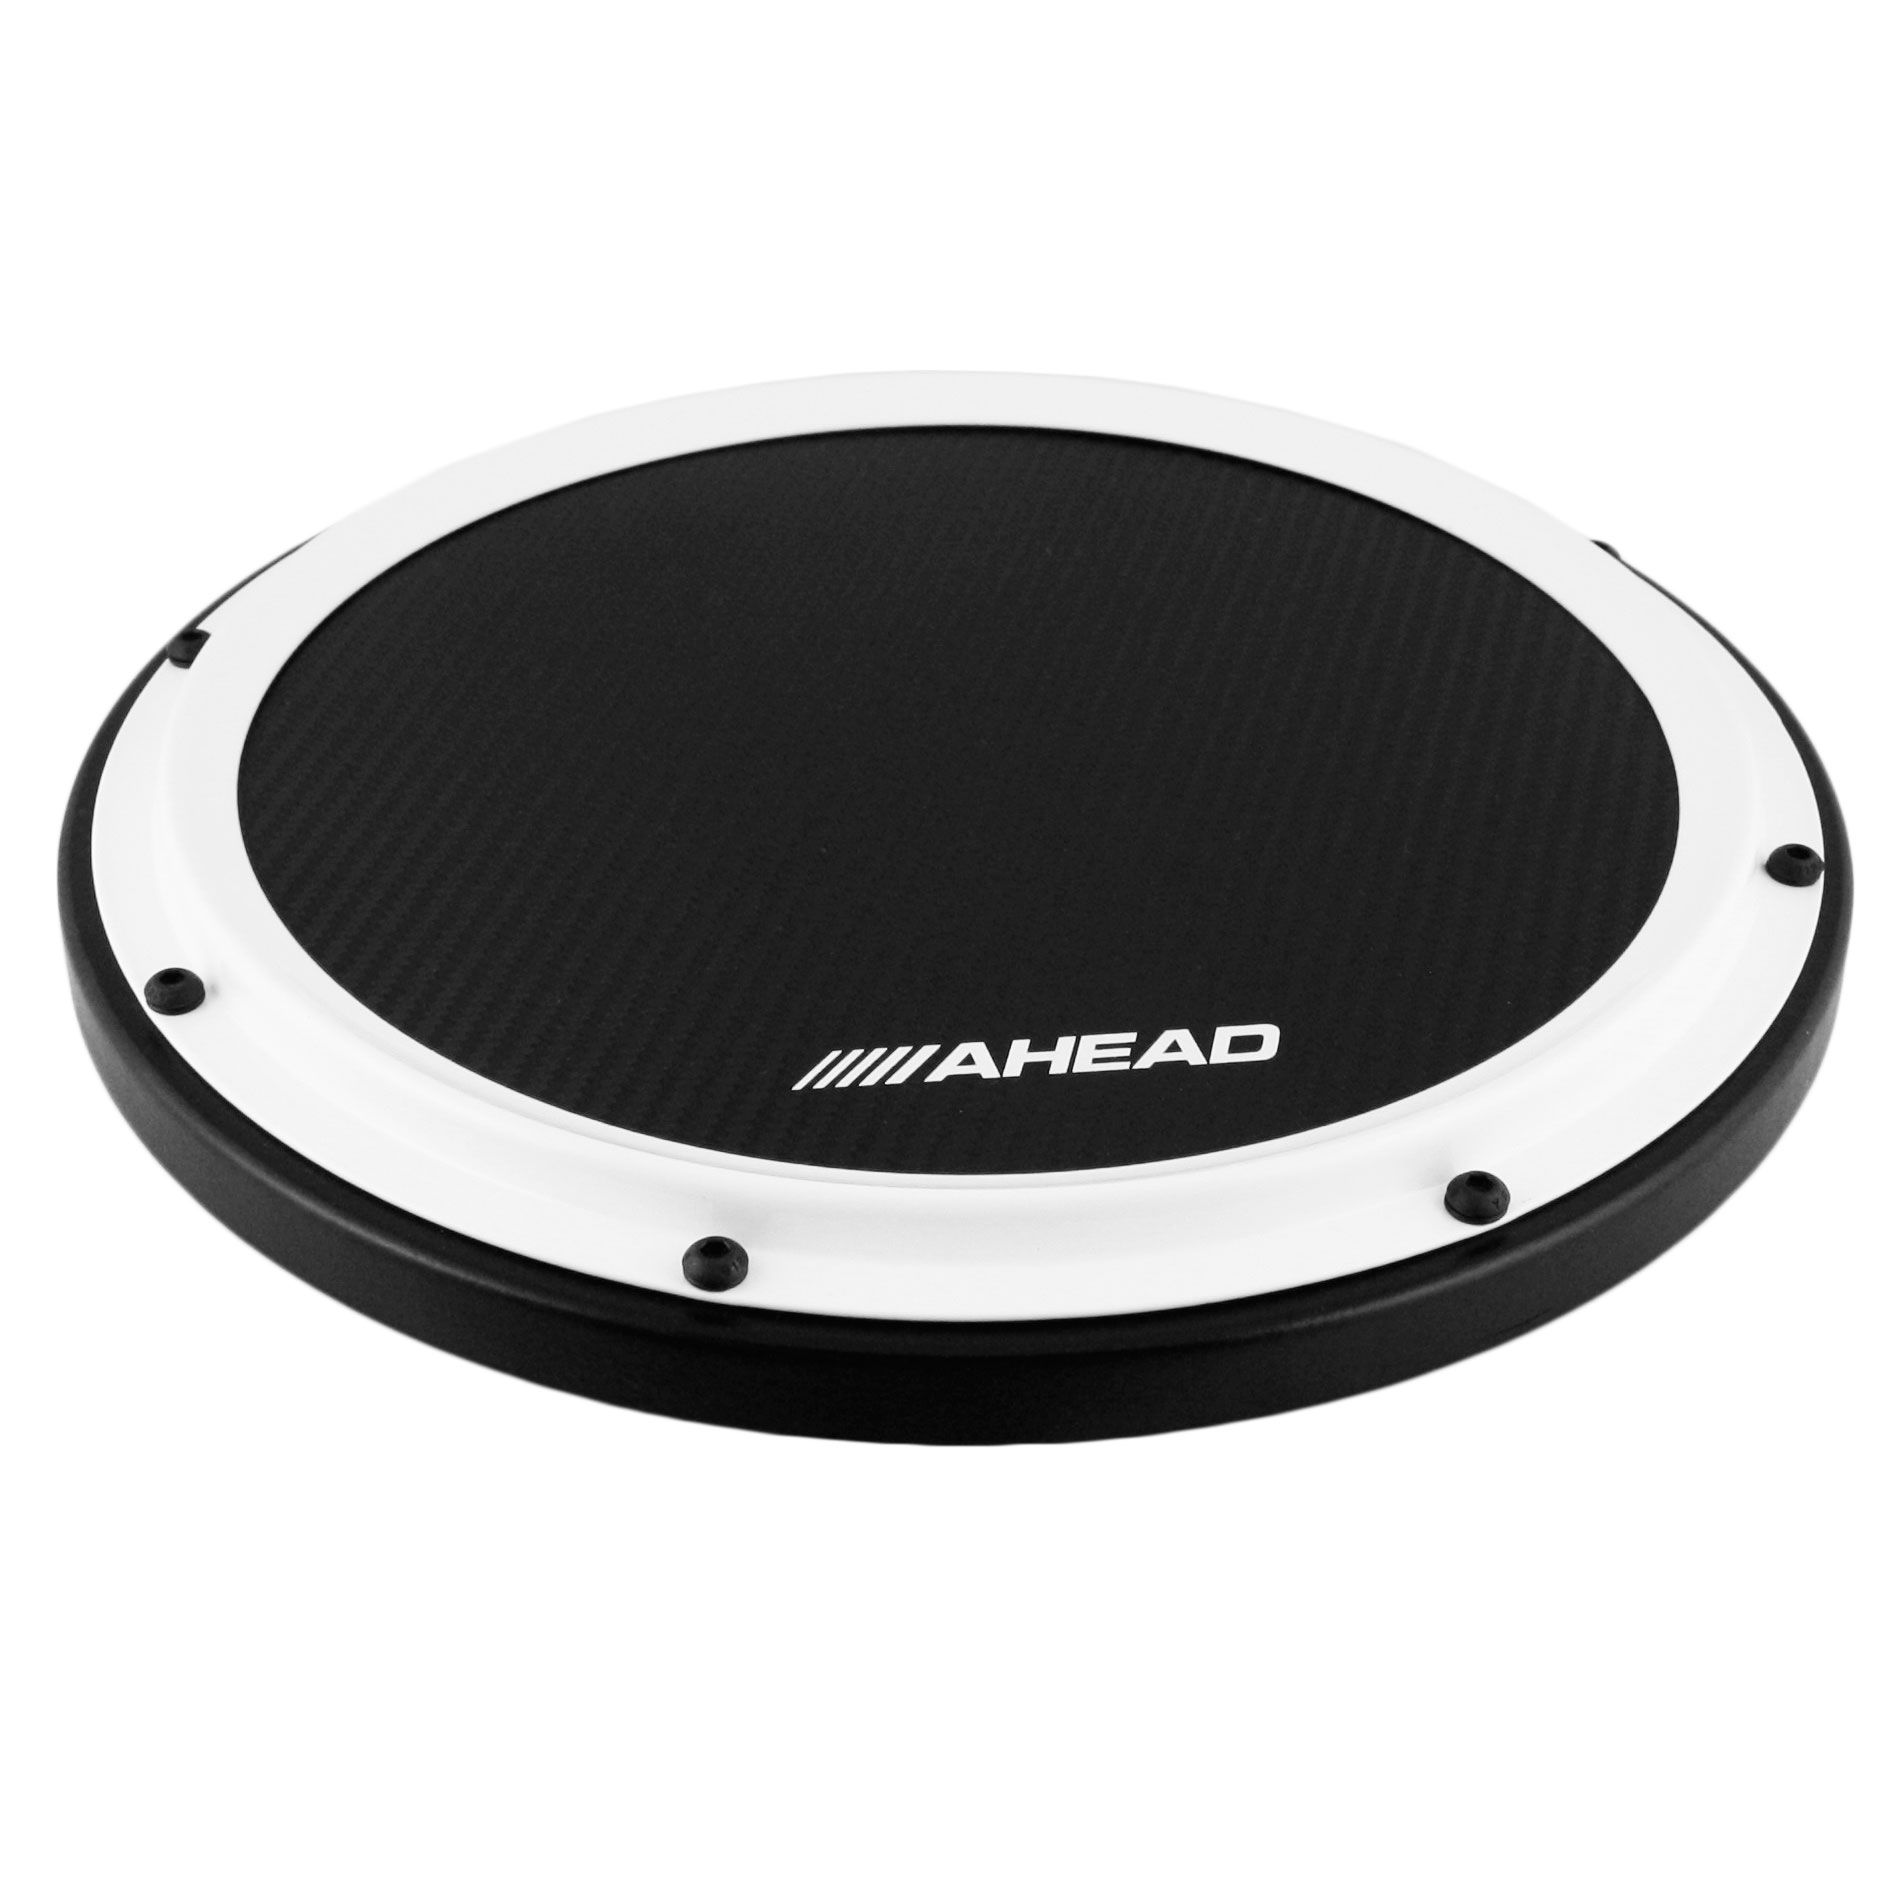 """Ahead S-Hoop Carbon Fiber Marching Practice Pad w// Snare Sound 14/"""" Black"""